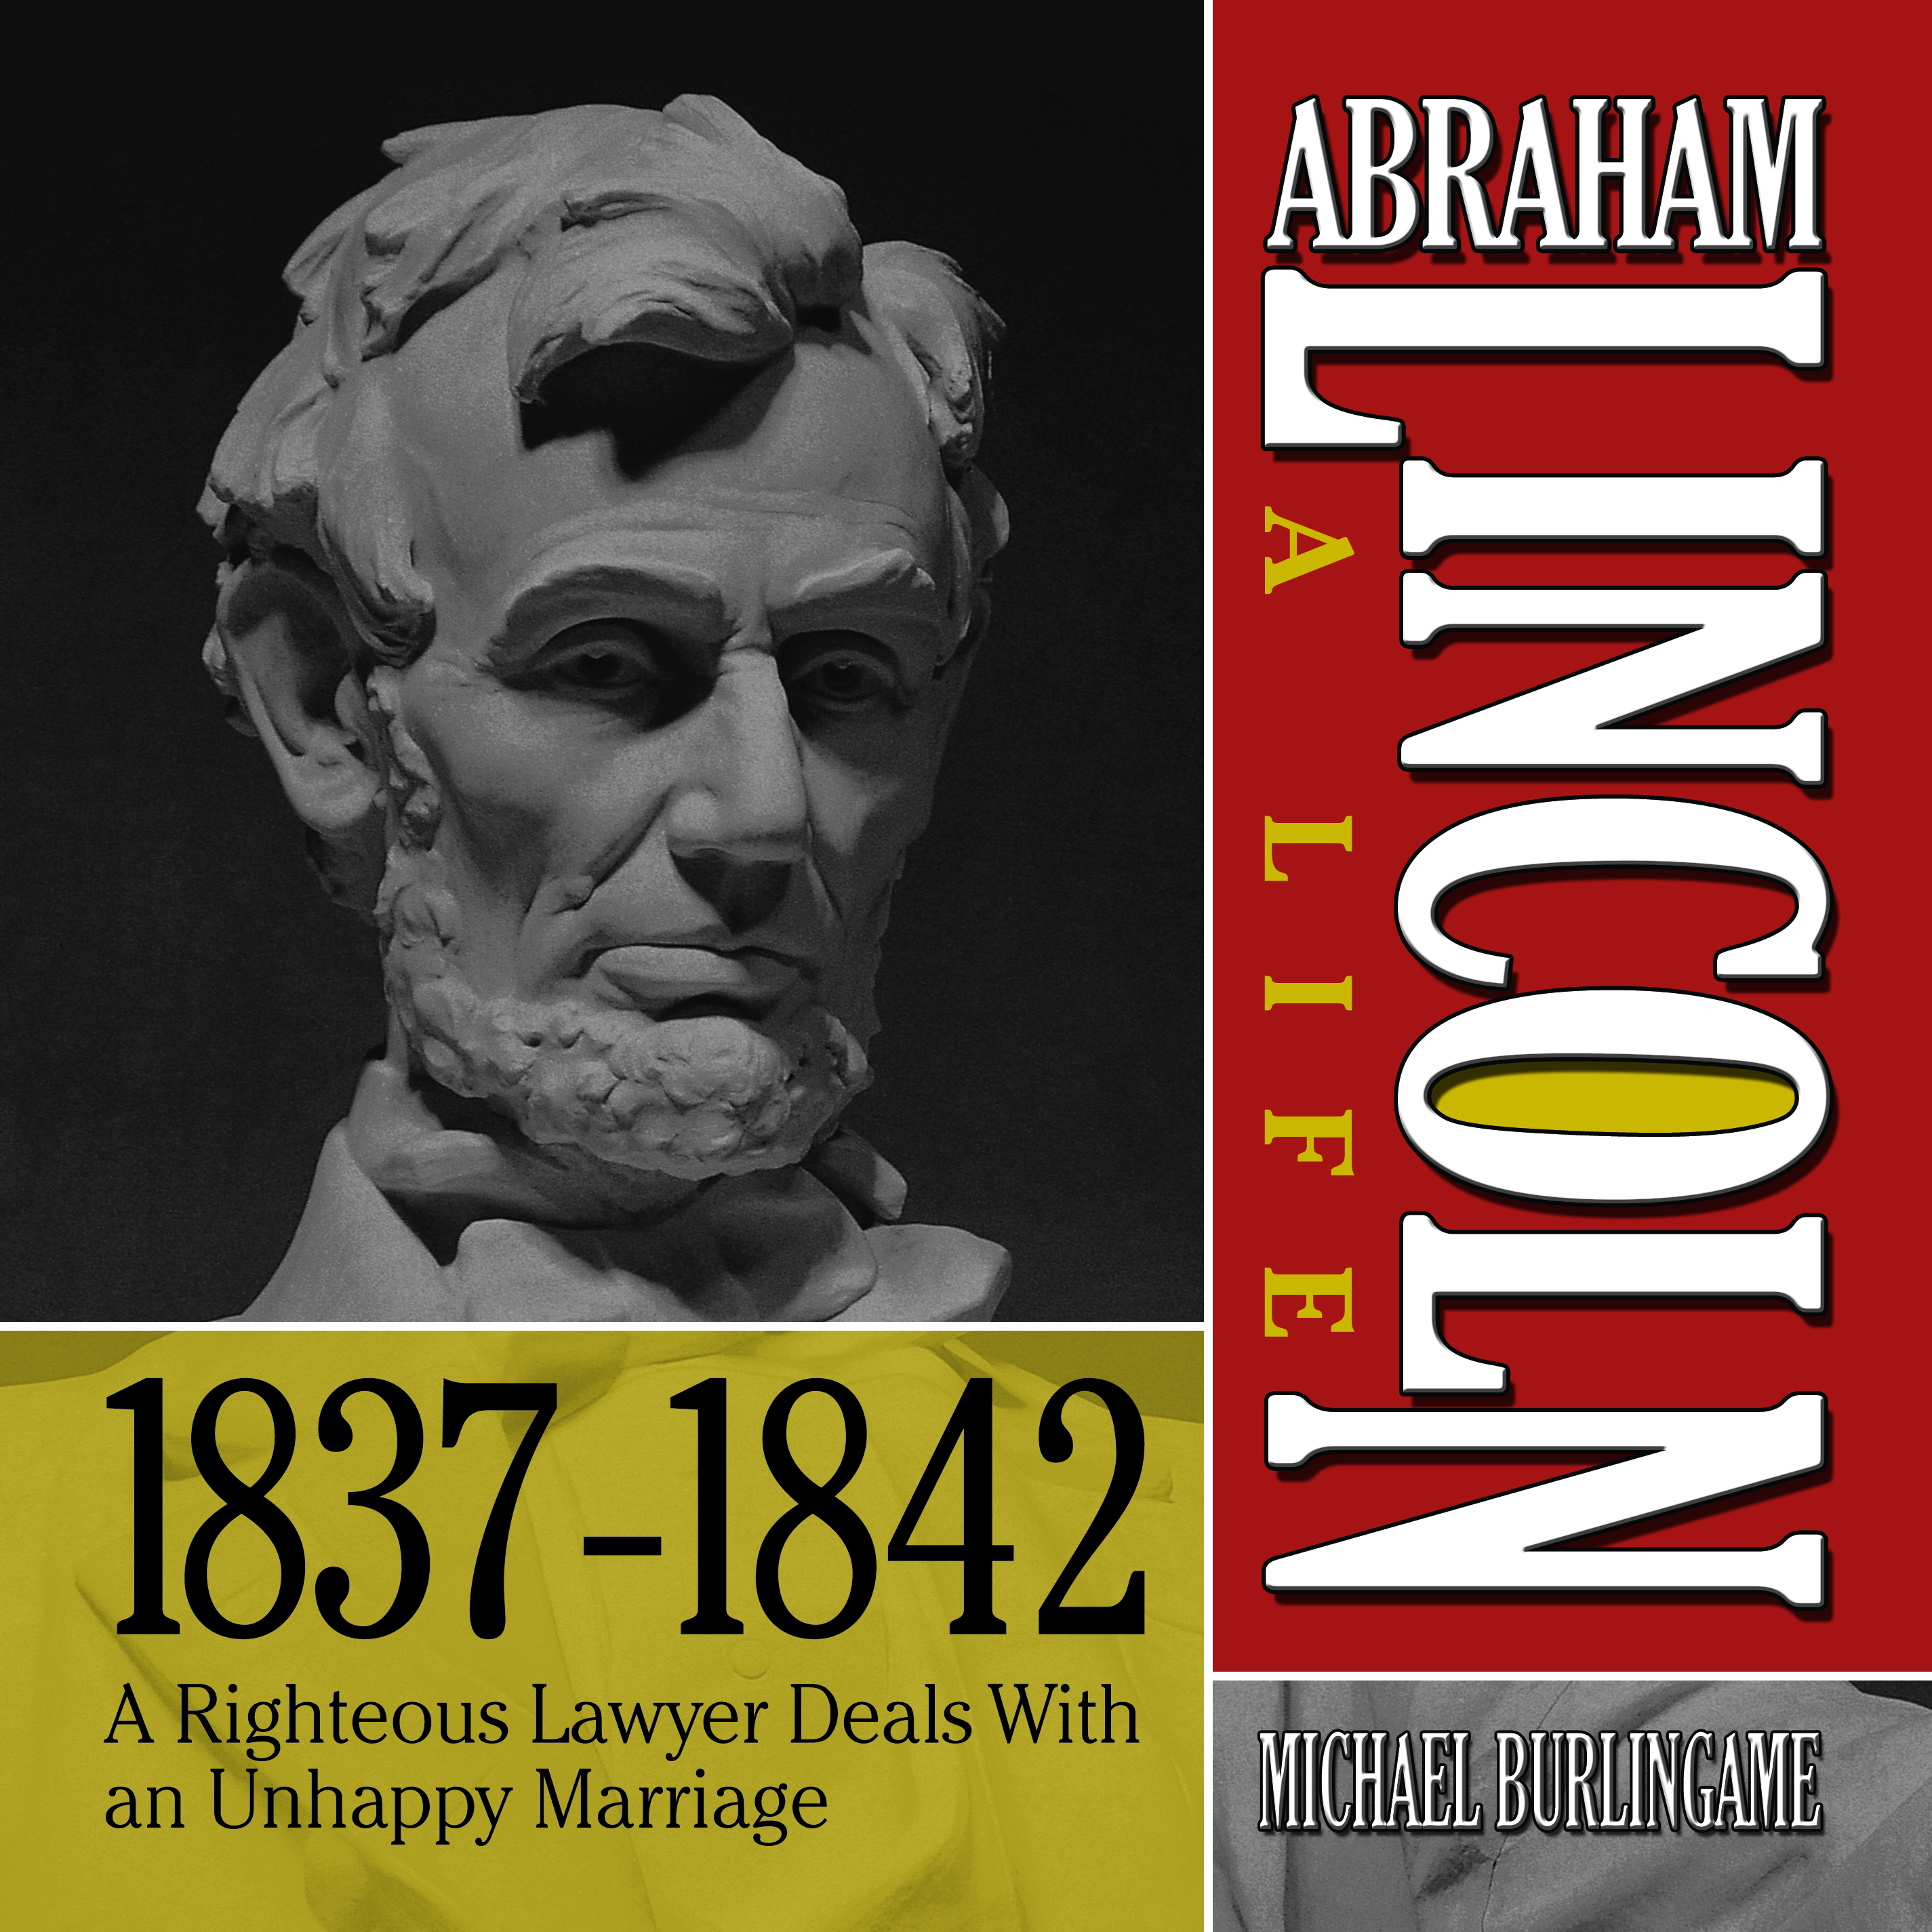 Printable Abraham Lincoln: A Life 1837–1842: A Righteous Lawyer Deals with an Unhappy Marriage Audiobook Cover Art